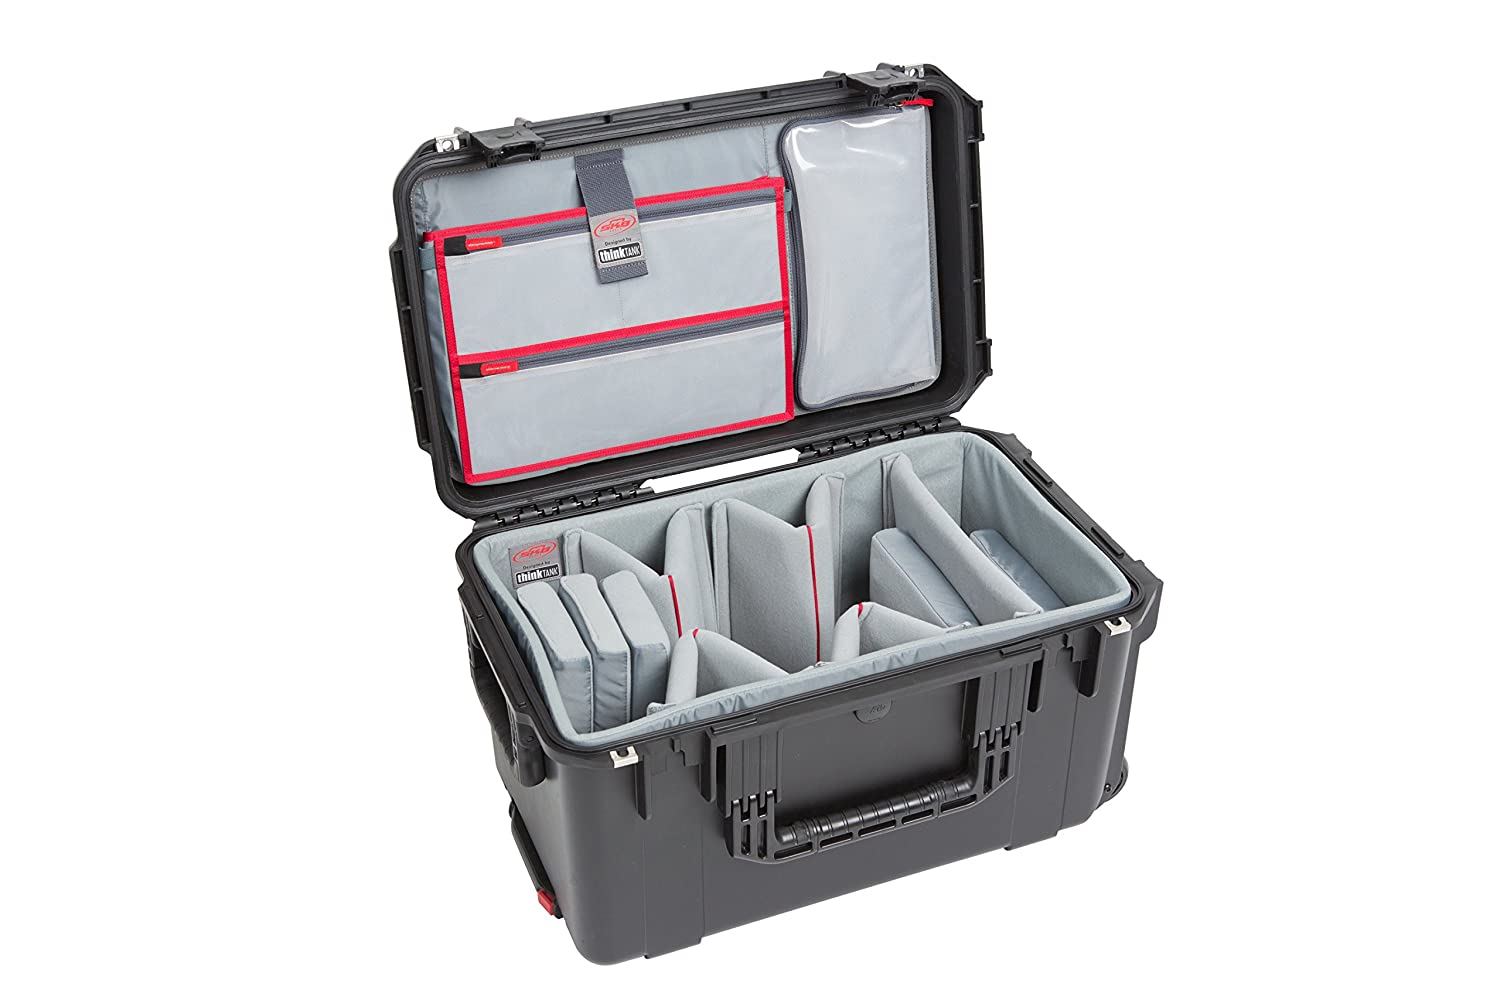 iSeries 2213-12 Case with Think Tank-Designed Video Dividers &Lid Organizer (Black)   B01MQGP8UZ